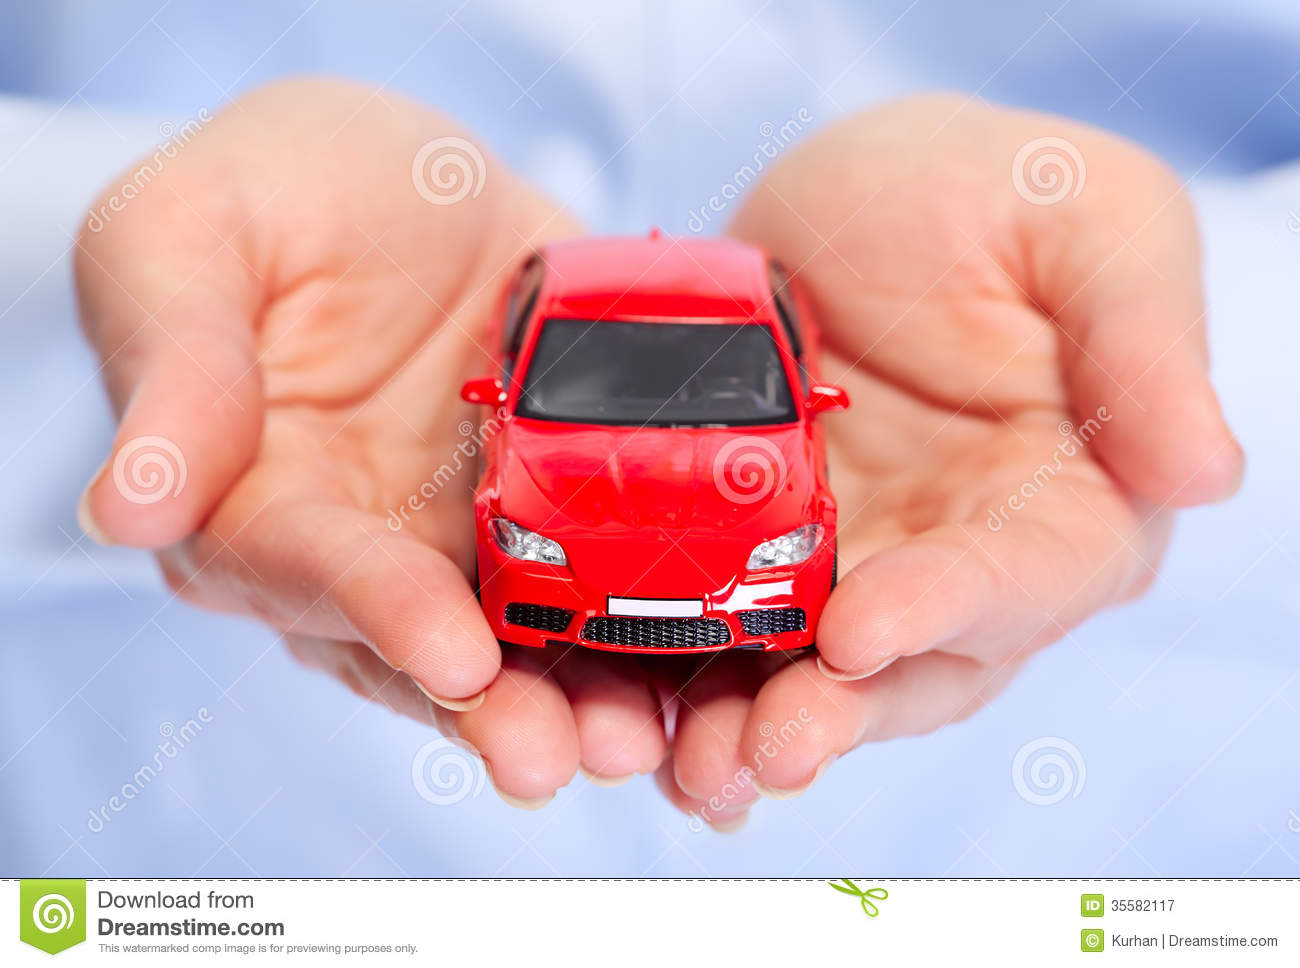 Expensive Car For Sale Or Gift Royalty Free Stock Image: Hand With Car. Royalty Free Stock Photography